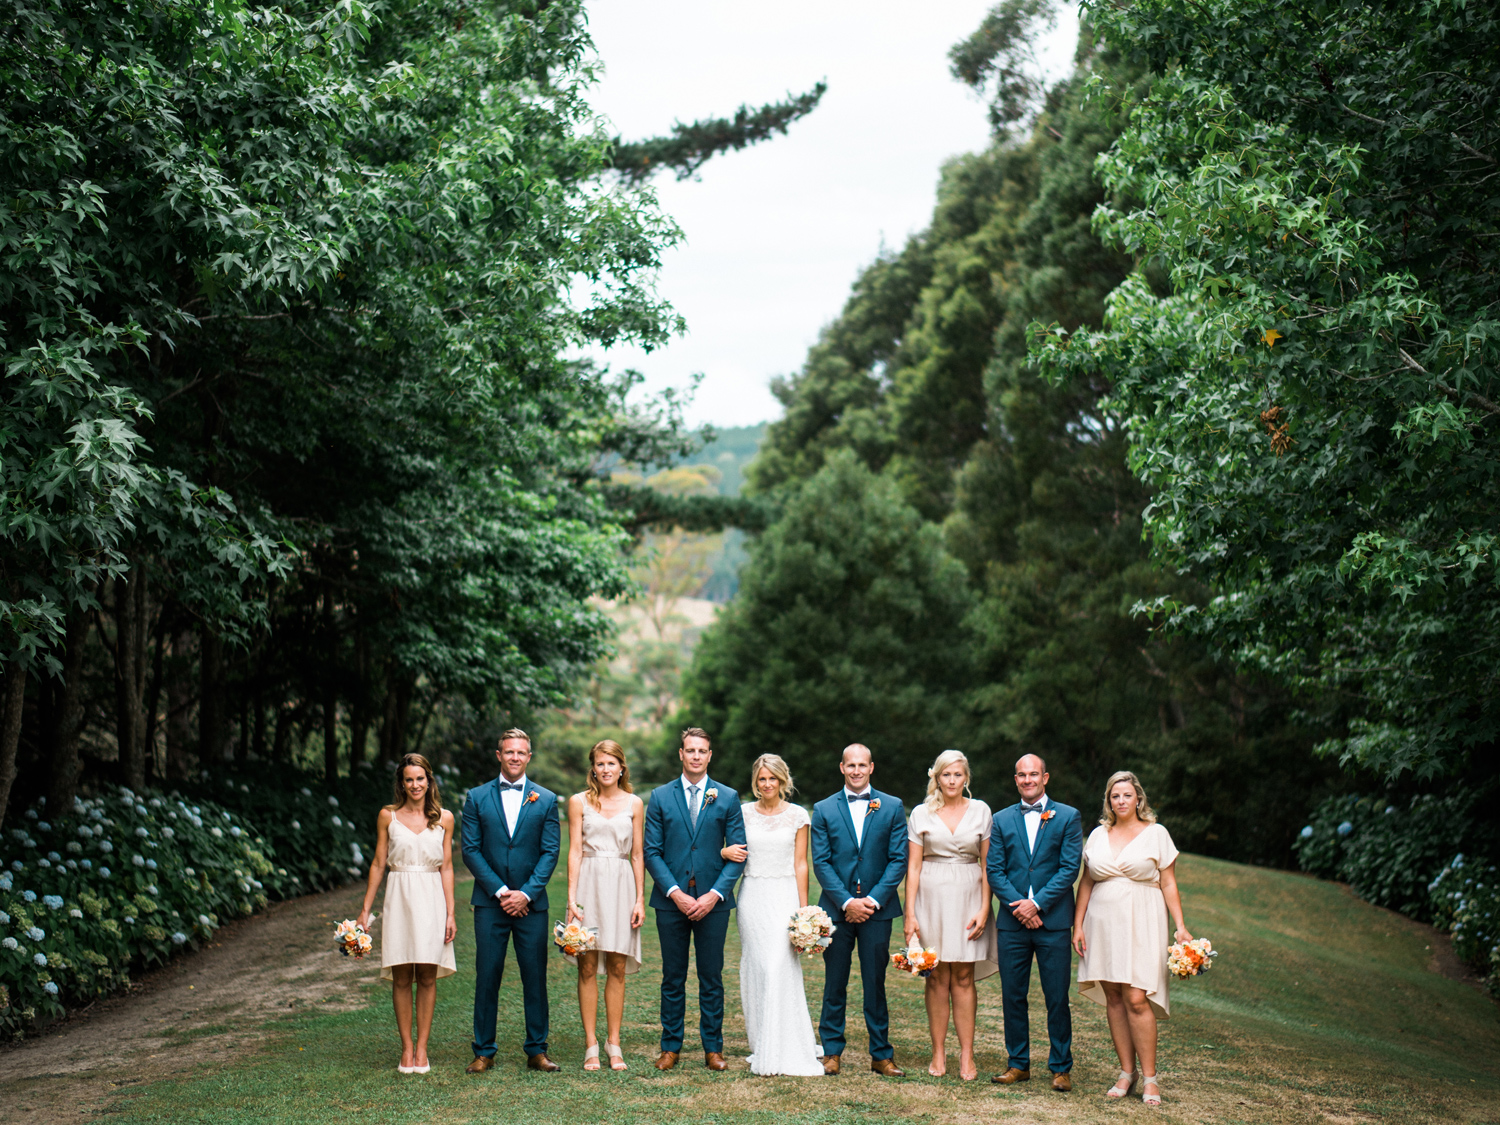 new-zealand-wedding-film-photographer-ryan-flynn-0018.JPG